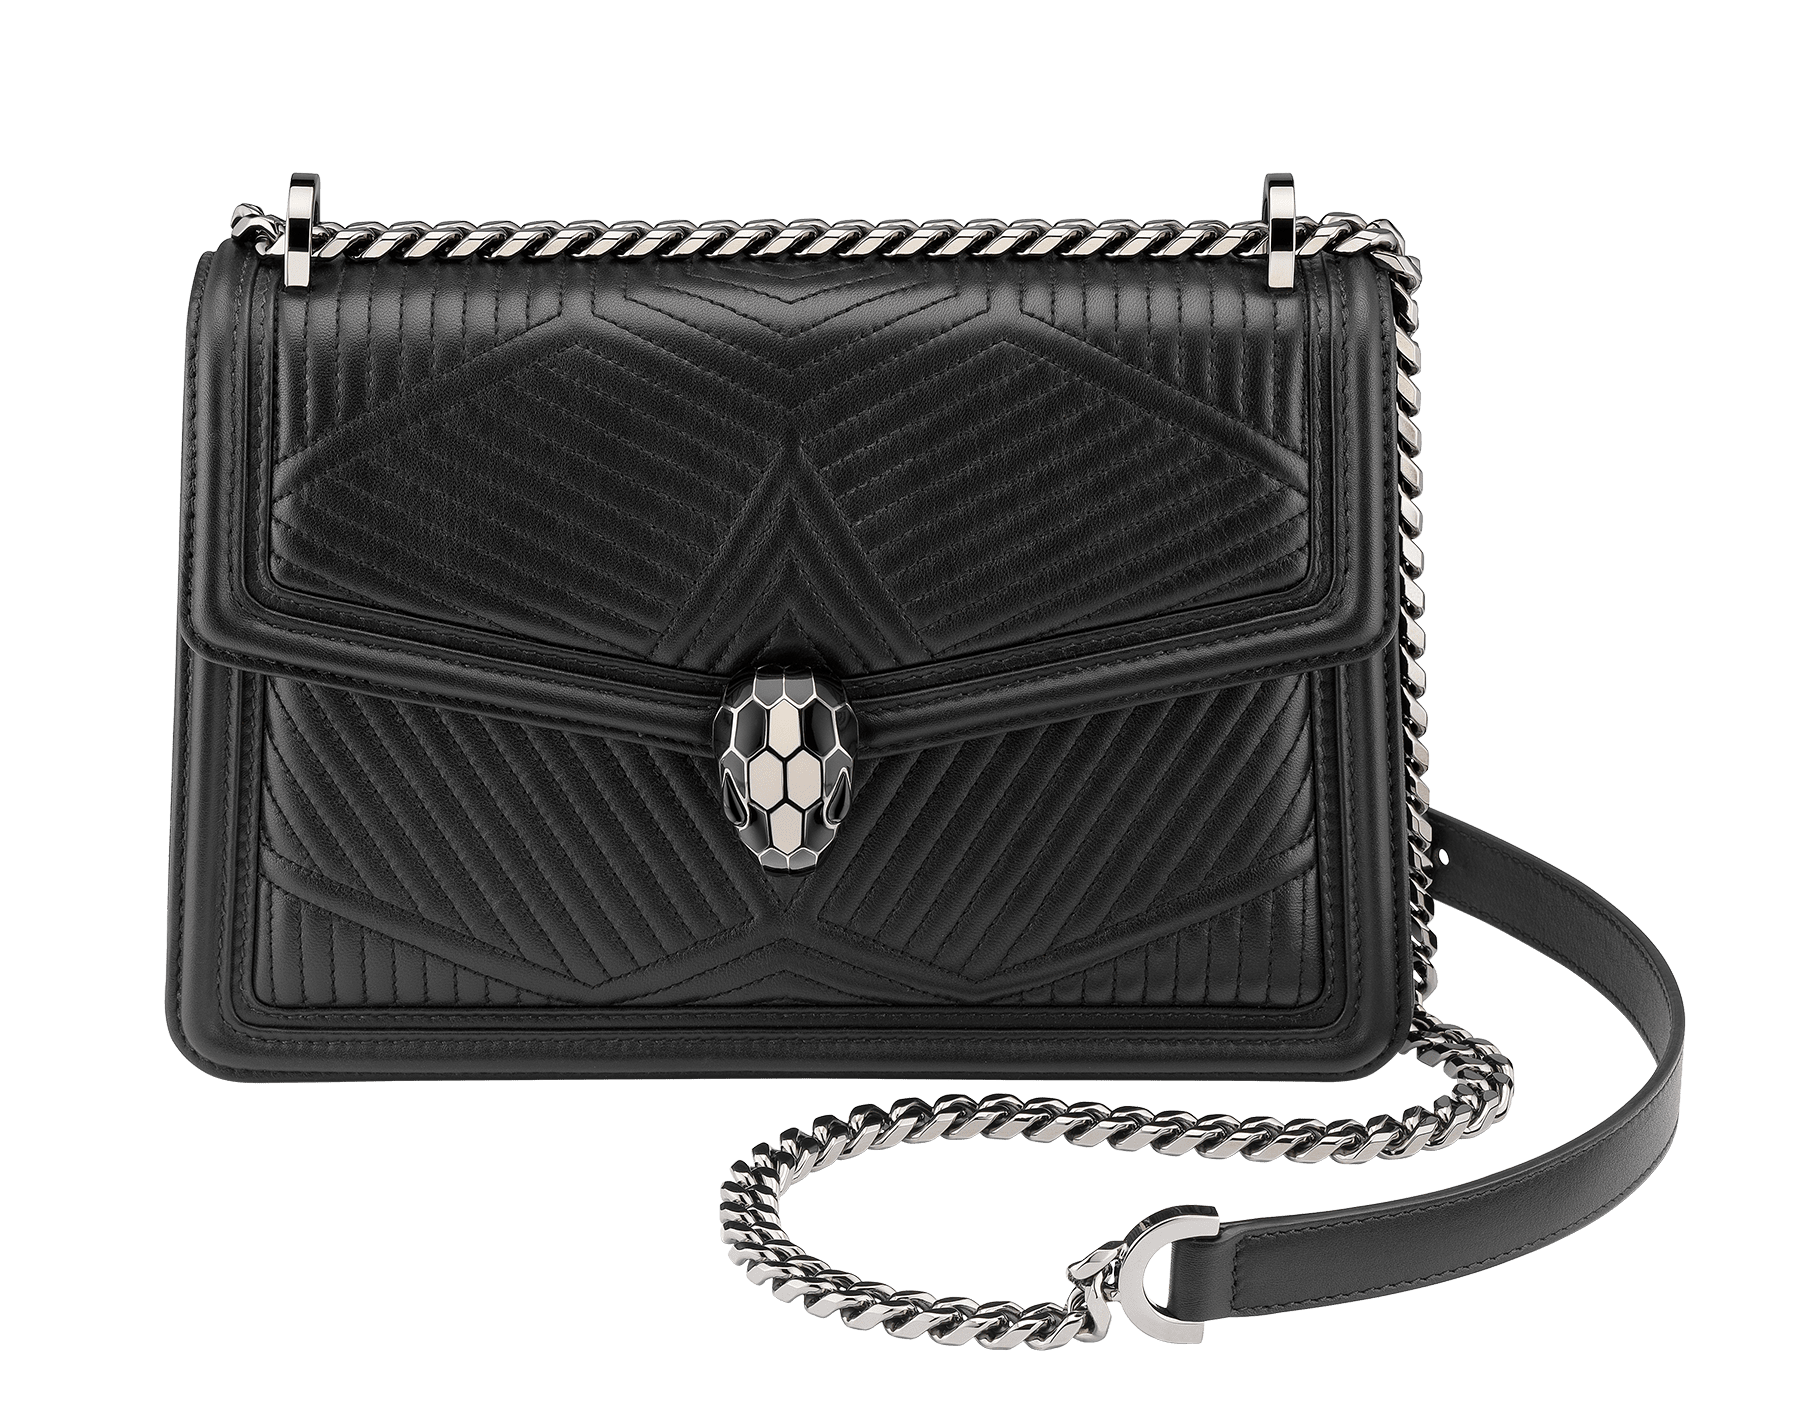 """""""Serpenti Diamond Blast"""" shoulder bag in crystal rose quilted nappa leather body and crystal rose calf leather frames. Iconic snakehead closure in light gold plated brass enriched with black and crystal rose enamel and black onyx eyes 922-FQDa image 1"""